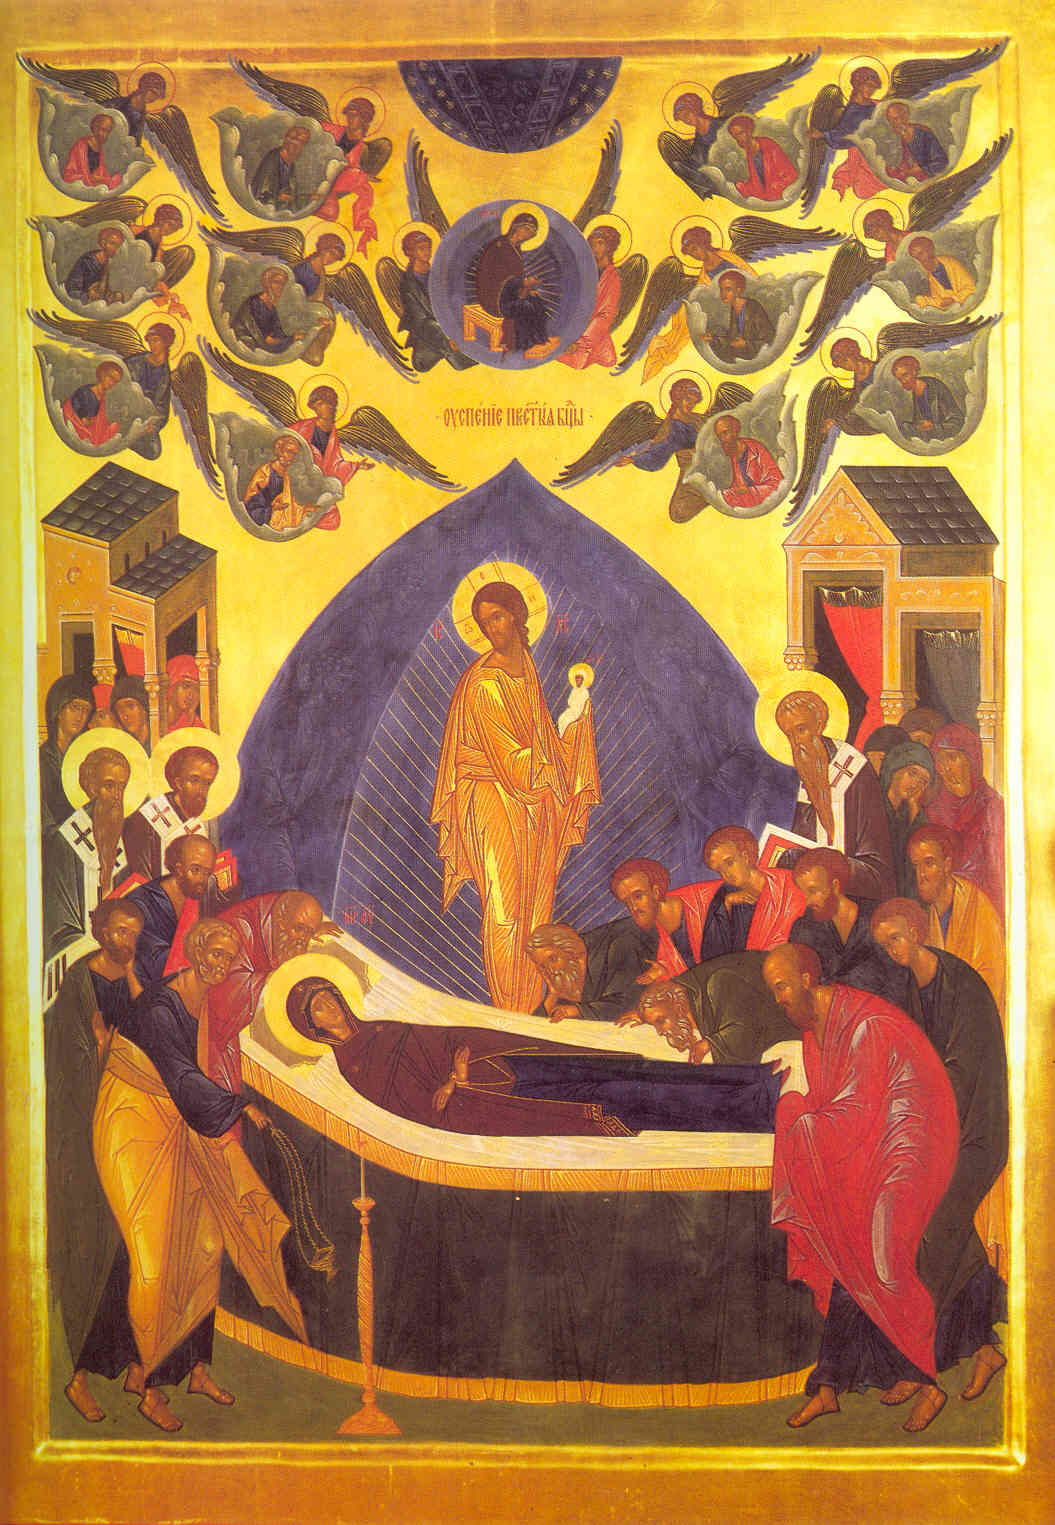 August 15, 2018 – The Dormition of the Most Holy Lady, the Theotokos and Ever-Virgin Mary